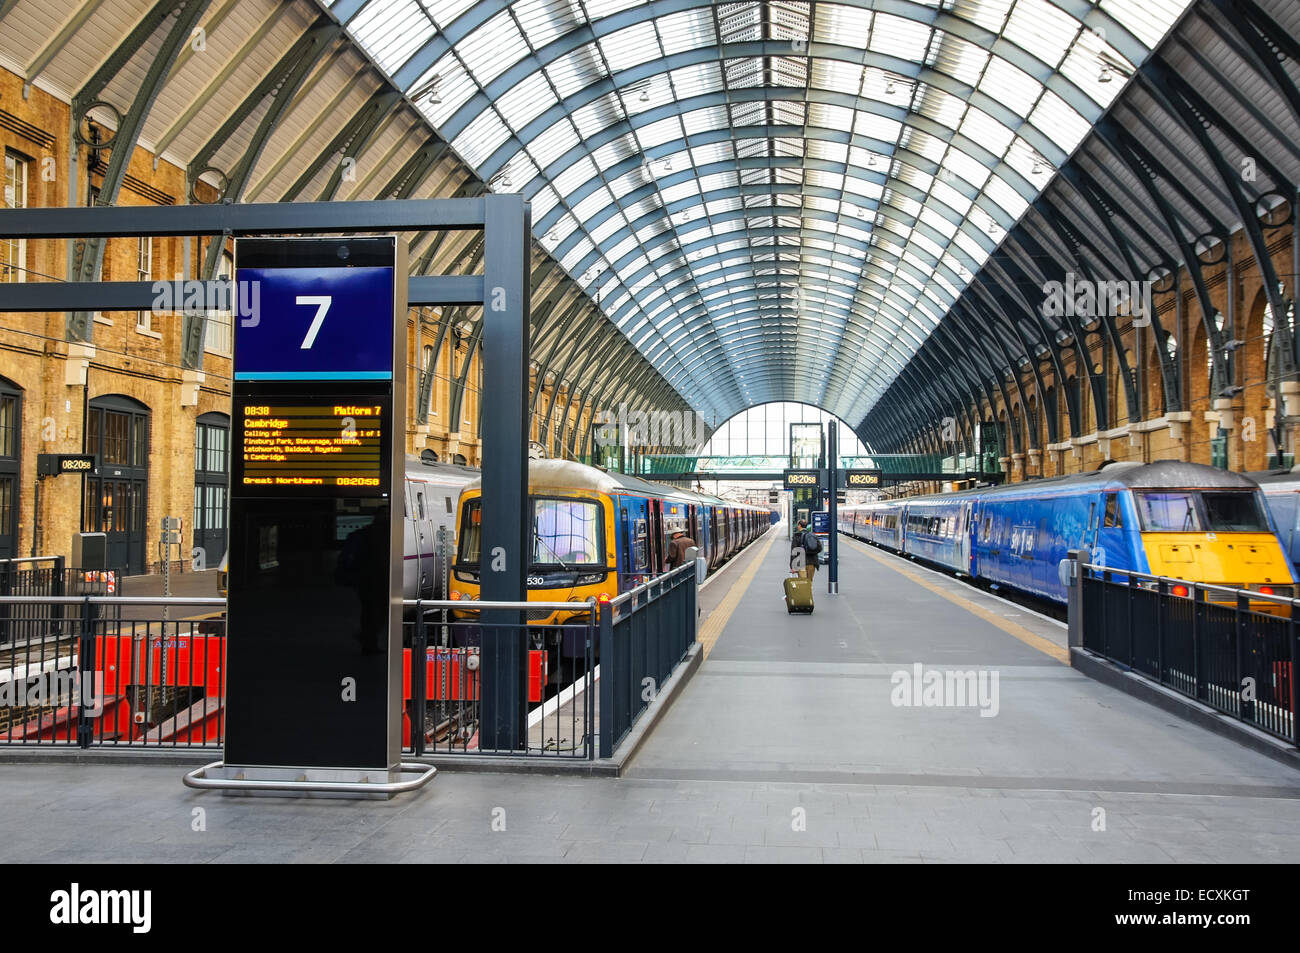 Great Northern and East Coast trains on the platform at Kings Cross railway train station, London England United - Stock Image